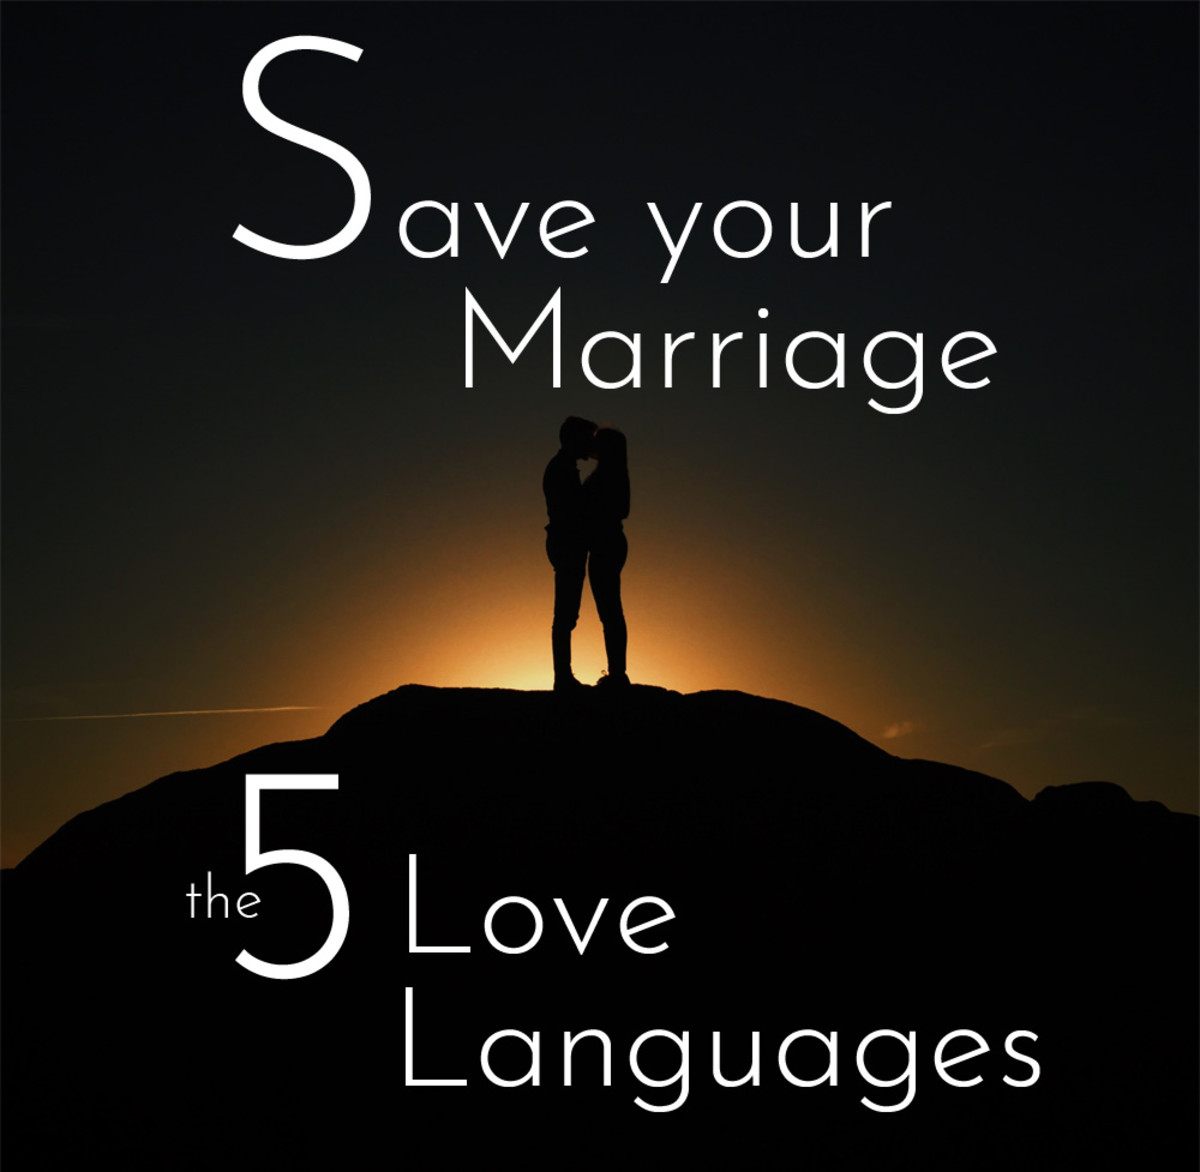 How the 5 Love Languages Can Save Your Marriage